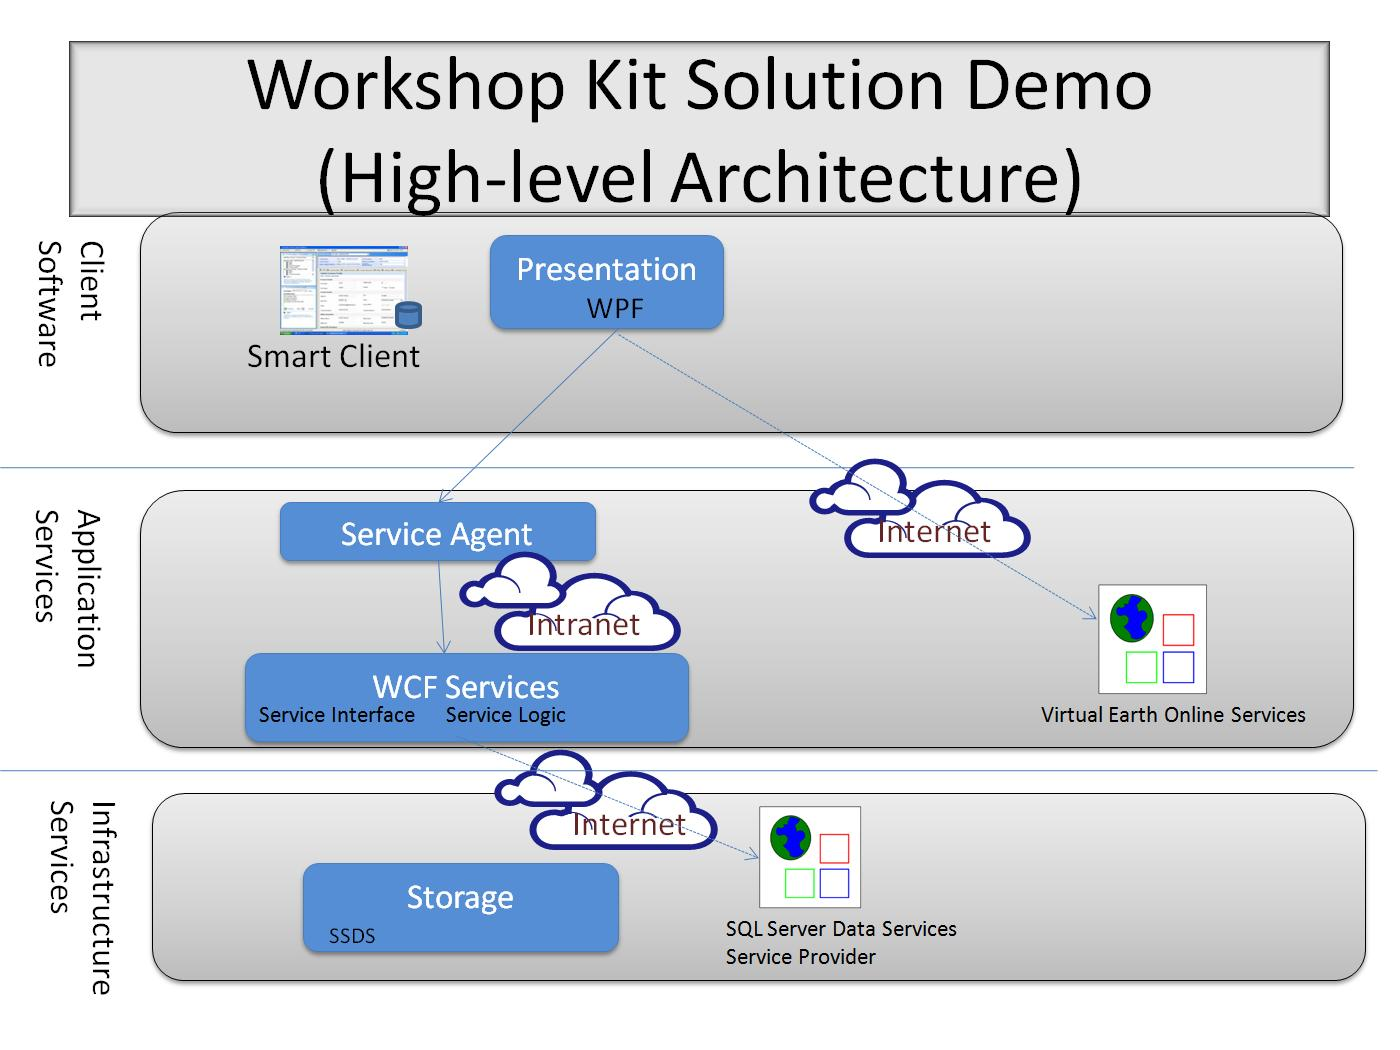 High-level architecture for the solution kit